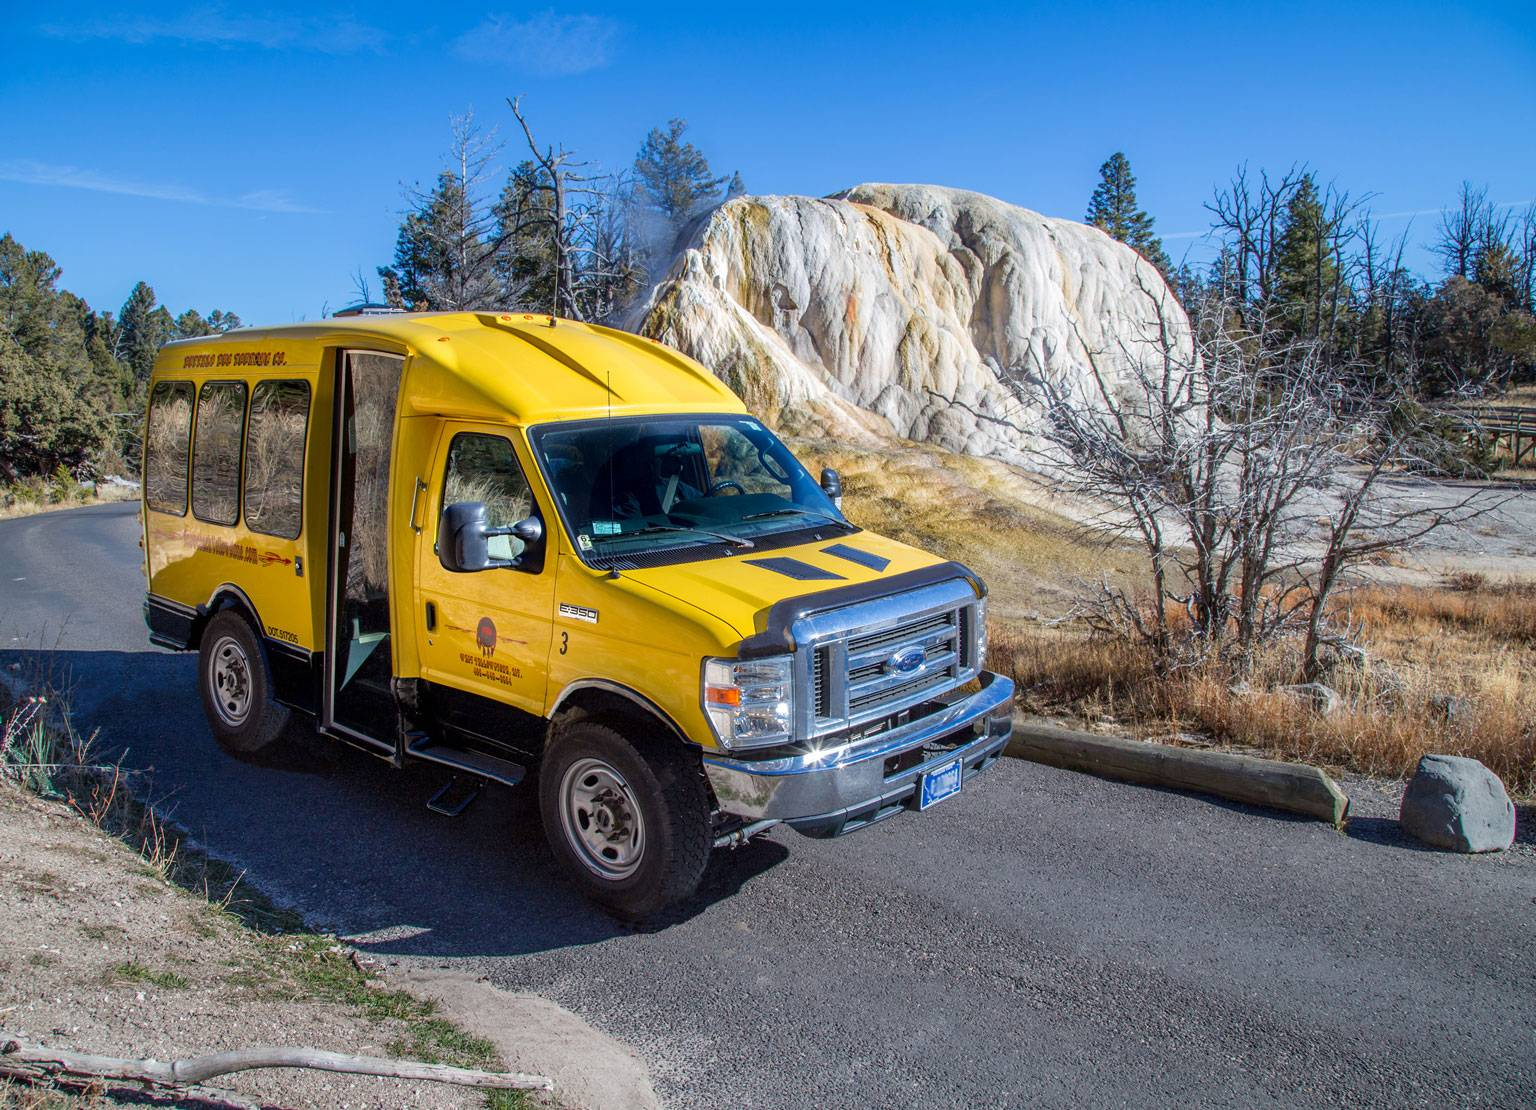 Yellowstone summer bus tours, Yellowstone tours